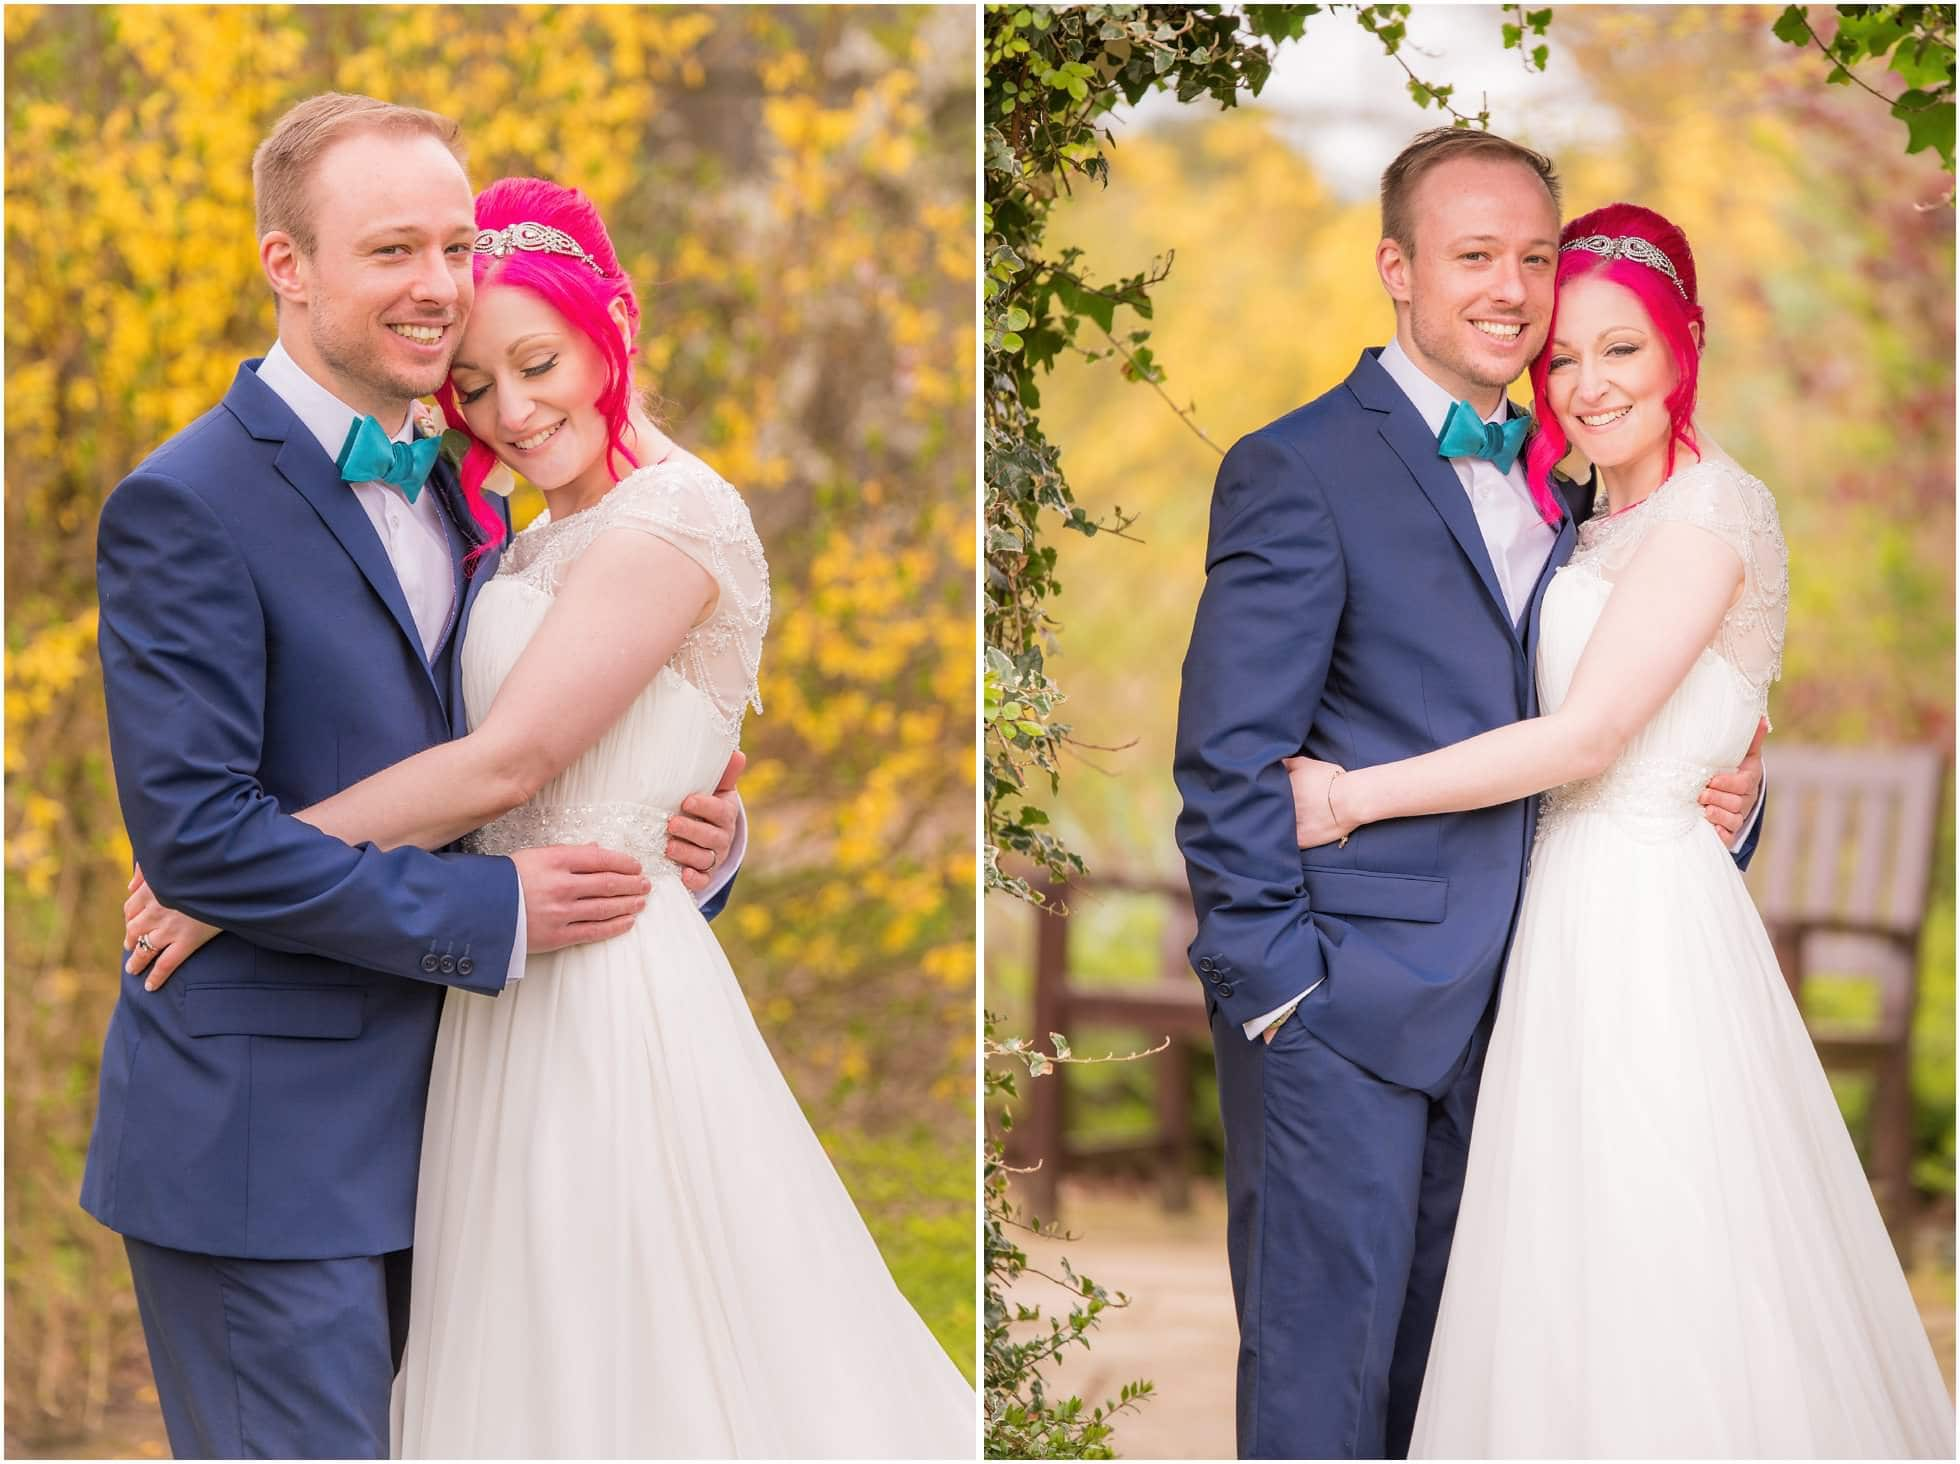 Relaxed portrait shots in the wedding gardens of Sandburn Hall